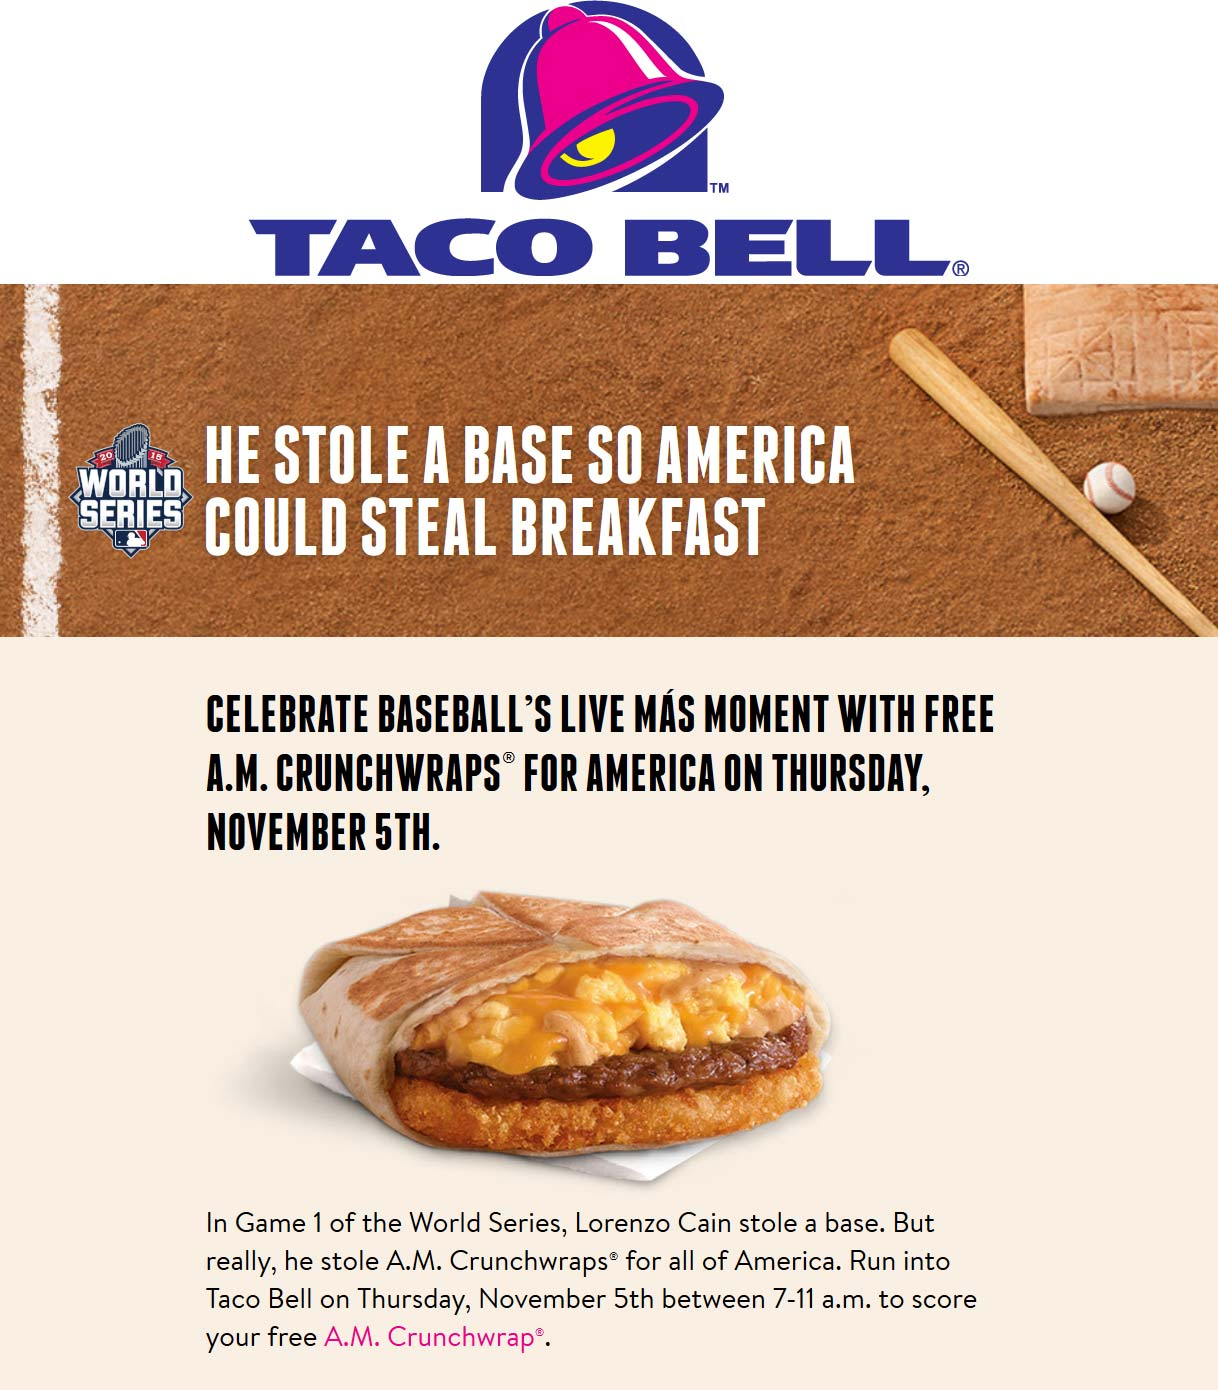 Taco Bell Coupon August 2018 A.M. crunchwrap free the 5th at Taco Bell